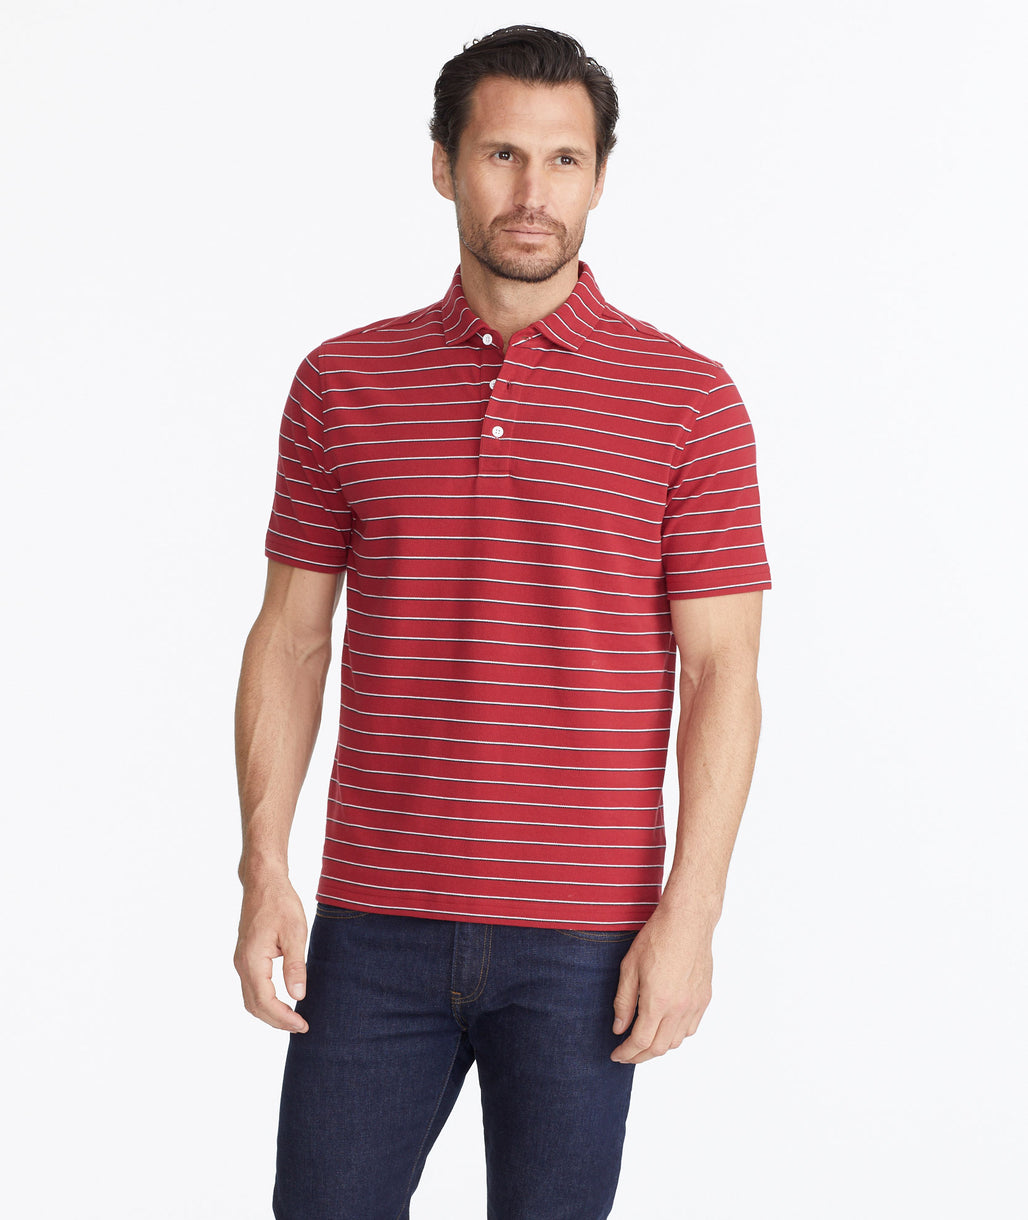 Model wearing a Red The Classic Pique Polo